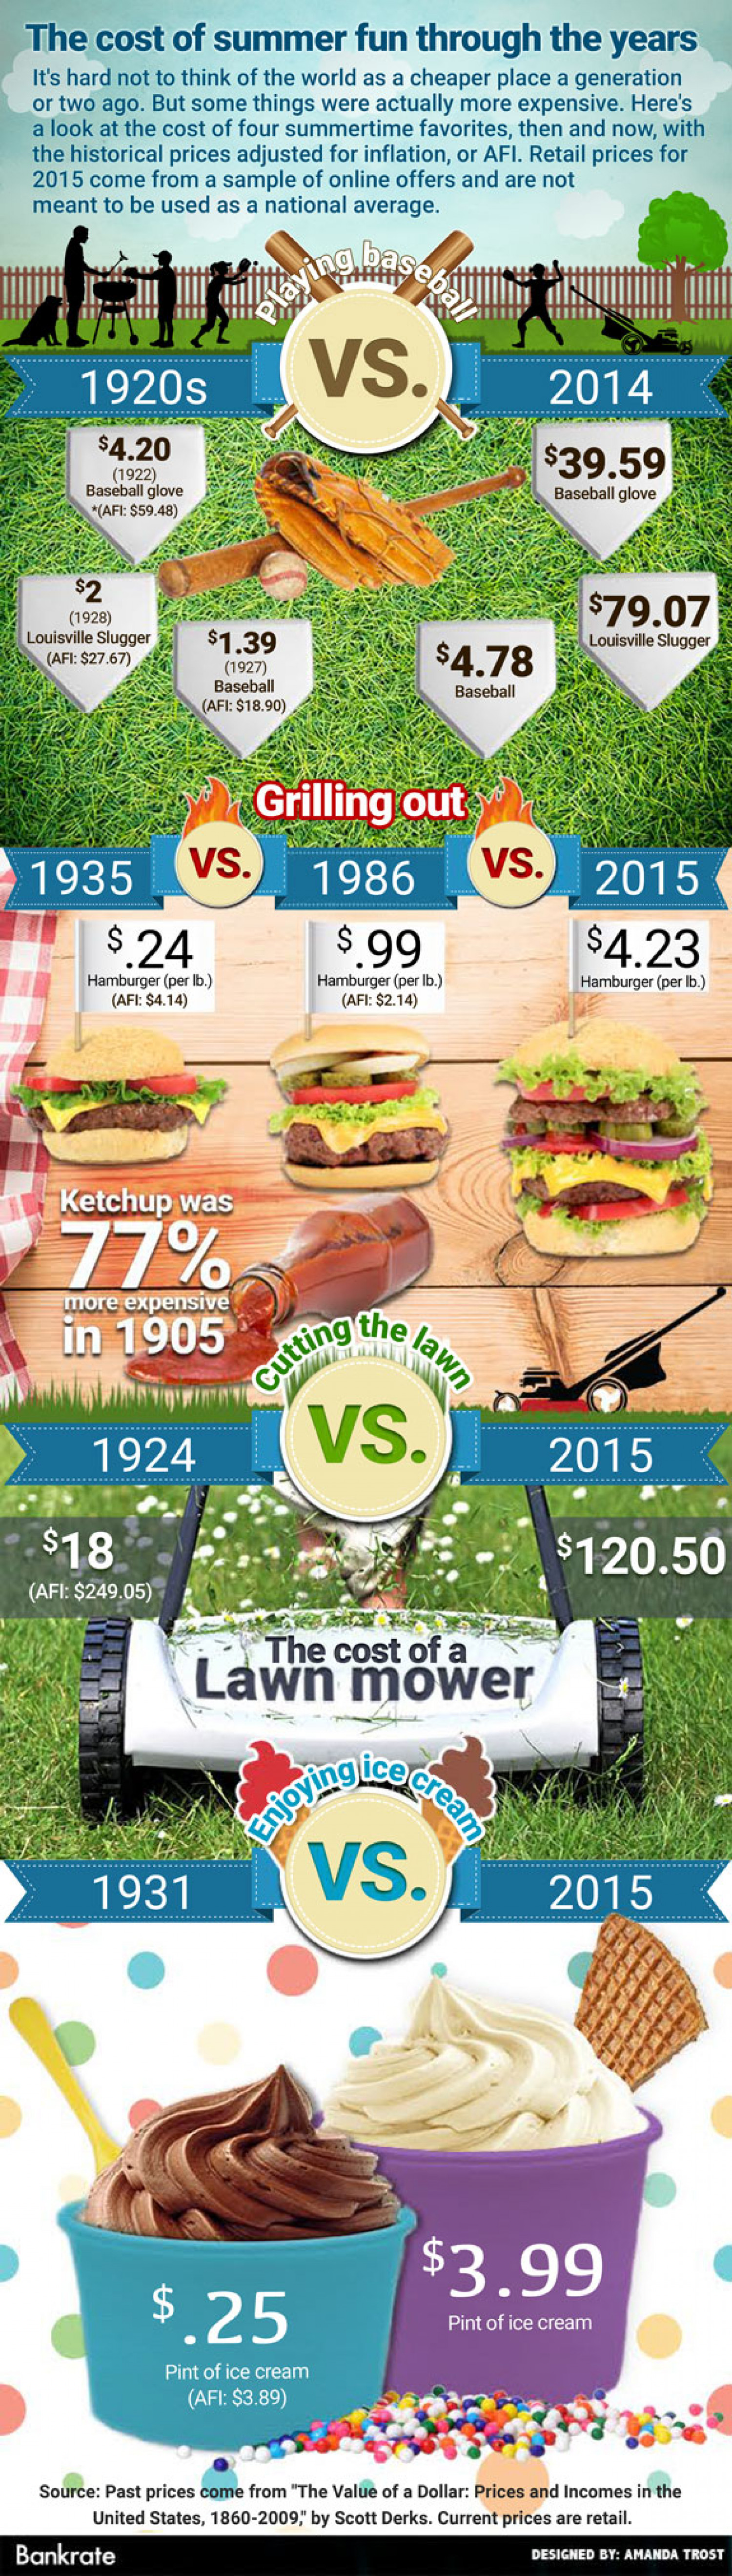 The cost of summer fun through the years Infographic